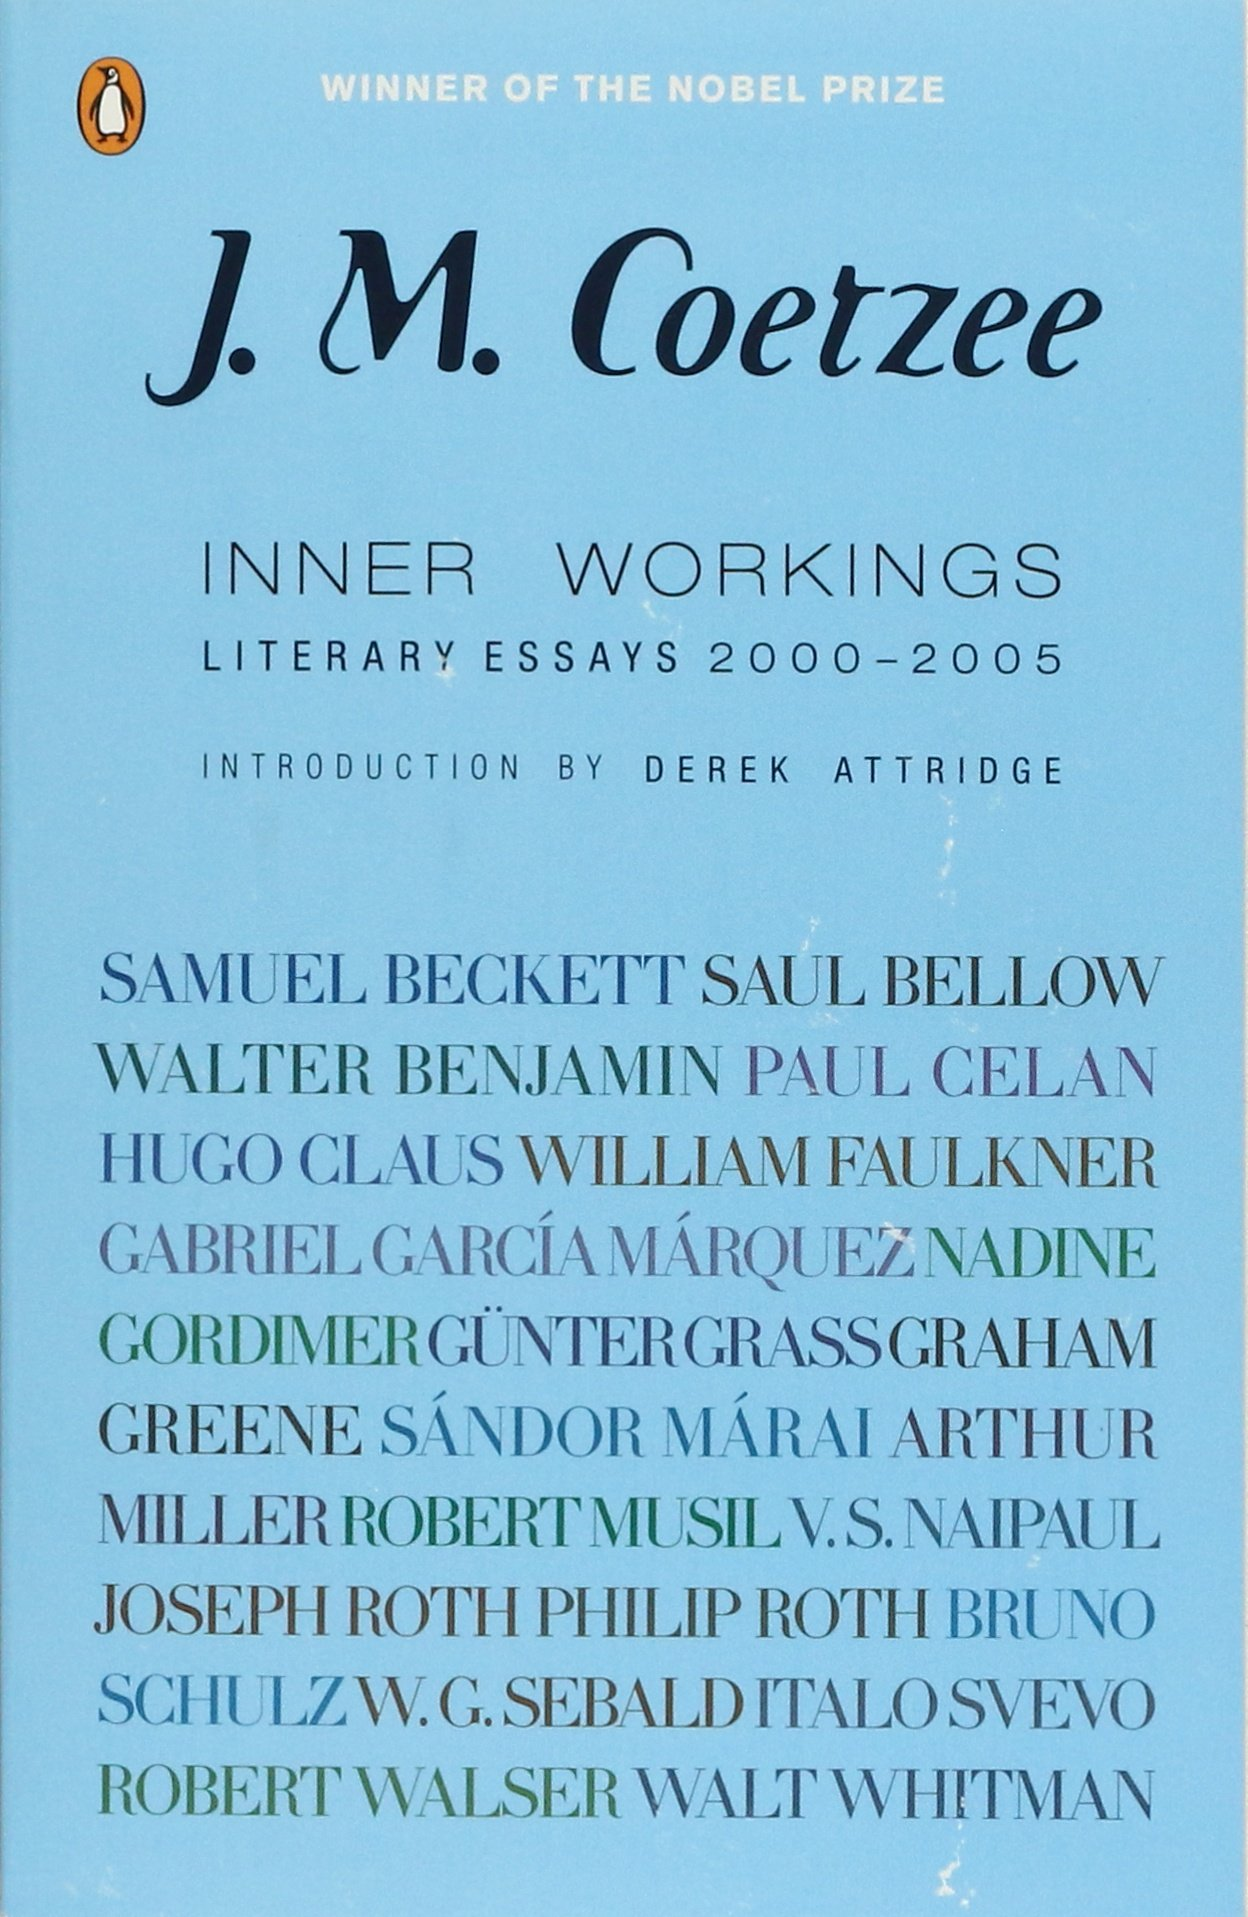 com inner workings literary essays 2000 2005  com inner workings literary essays 2000 2005 9780143113782 j m coetzee derek attridge books